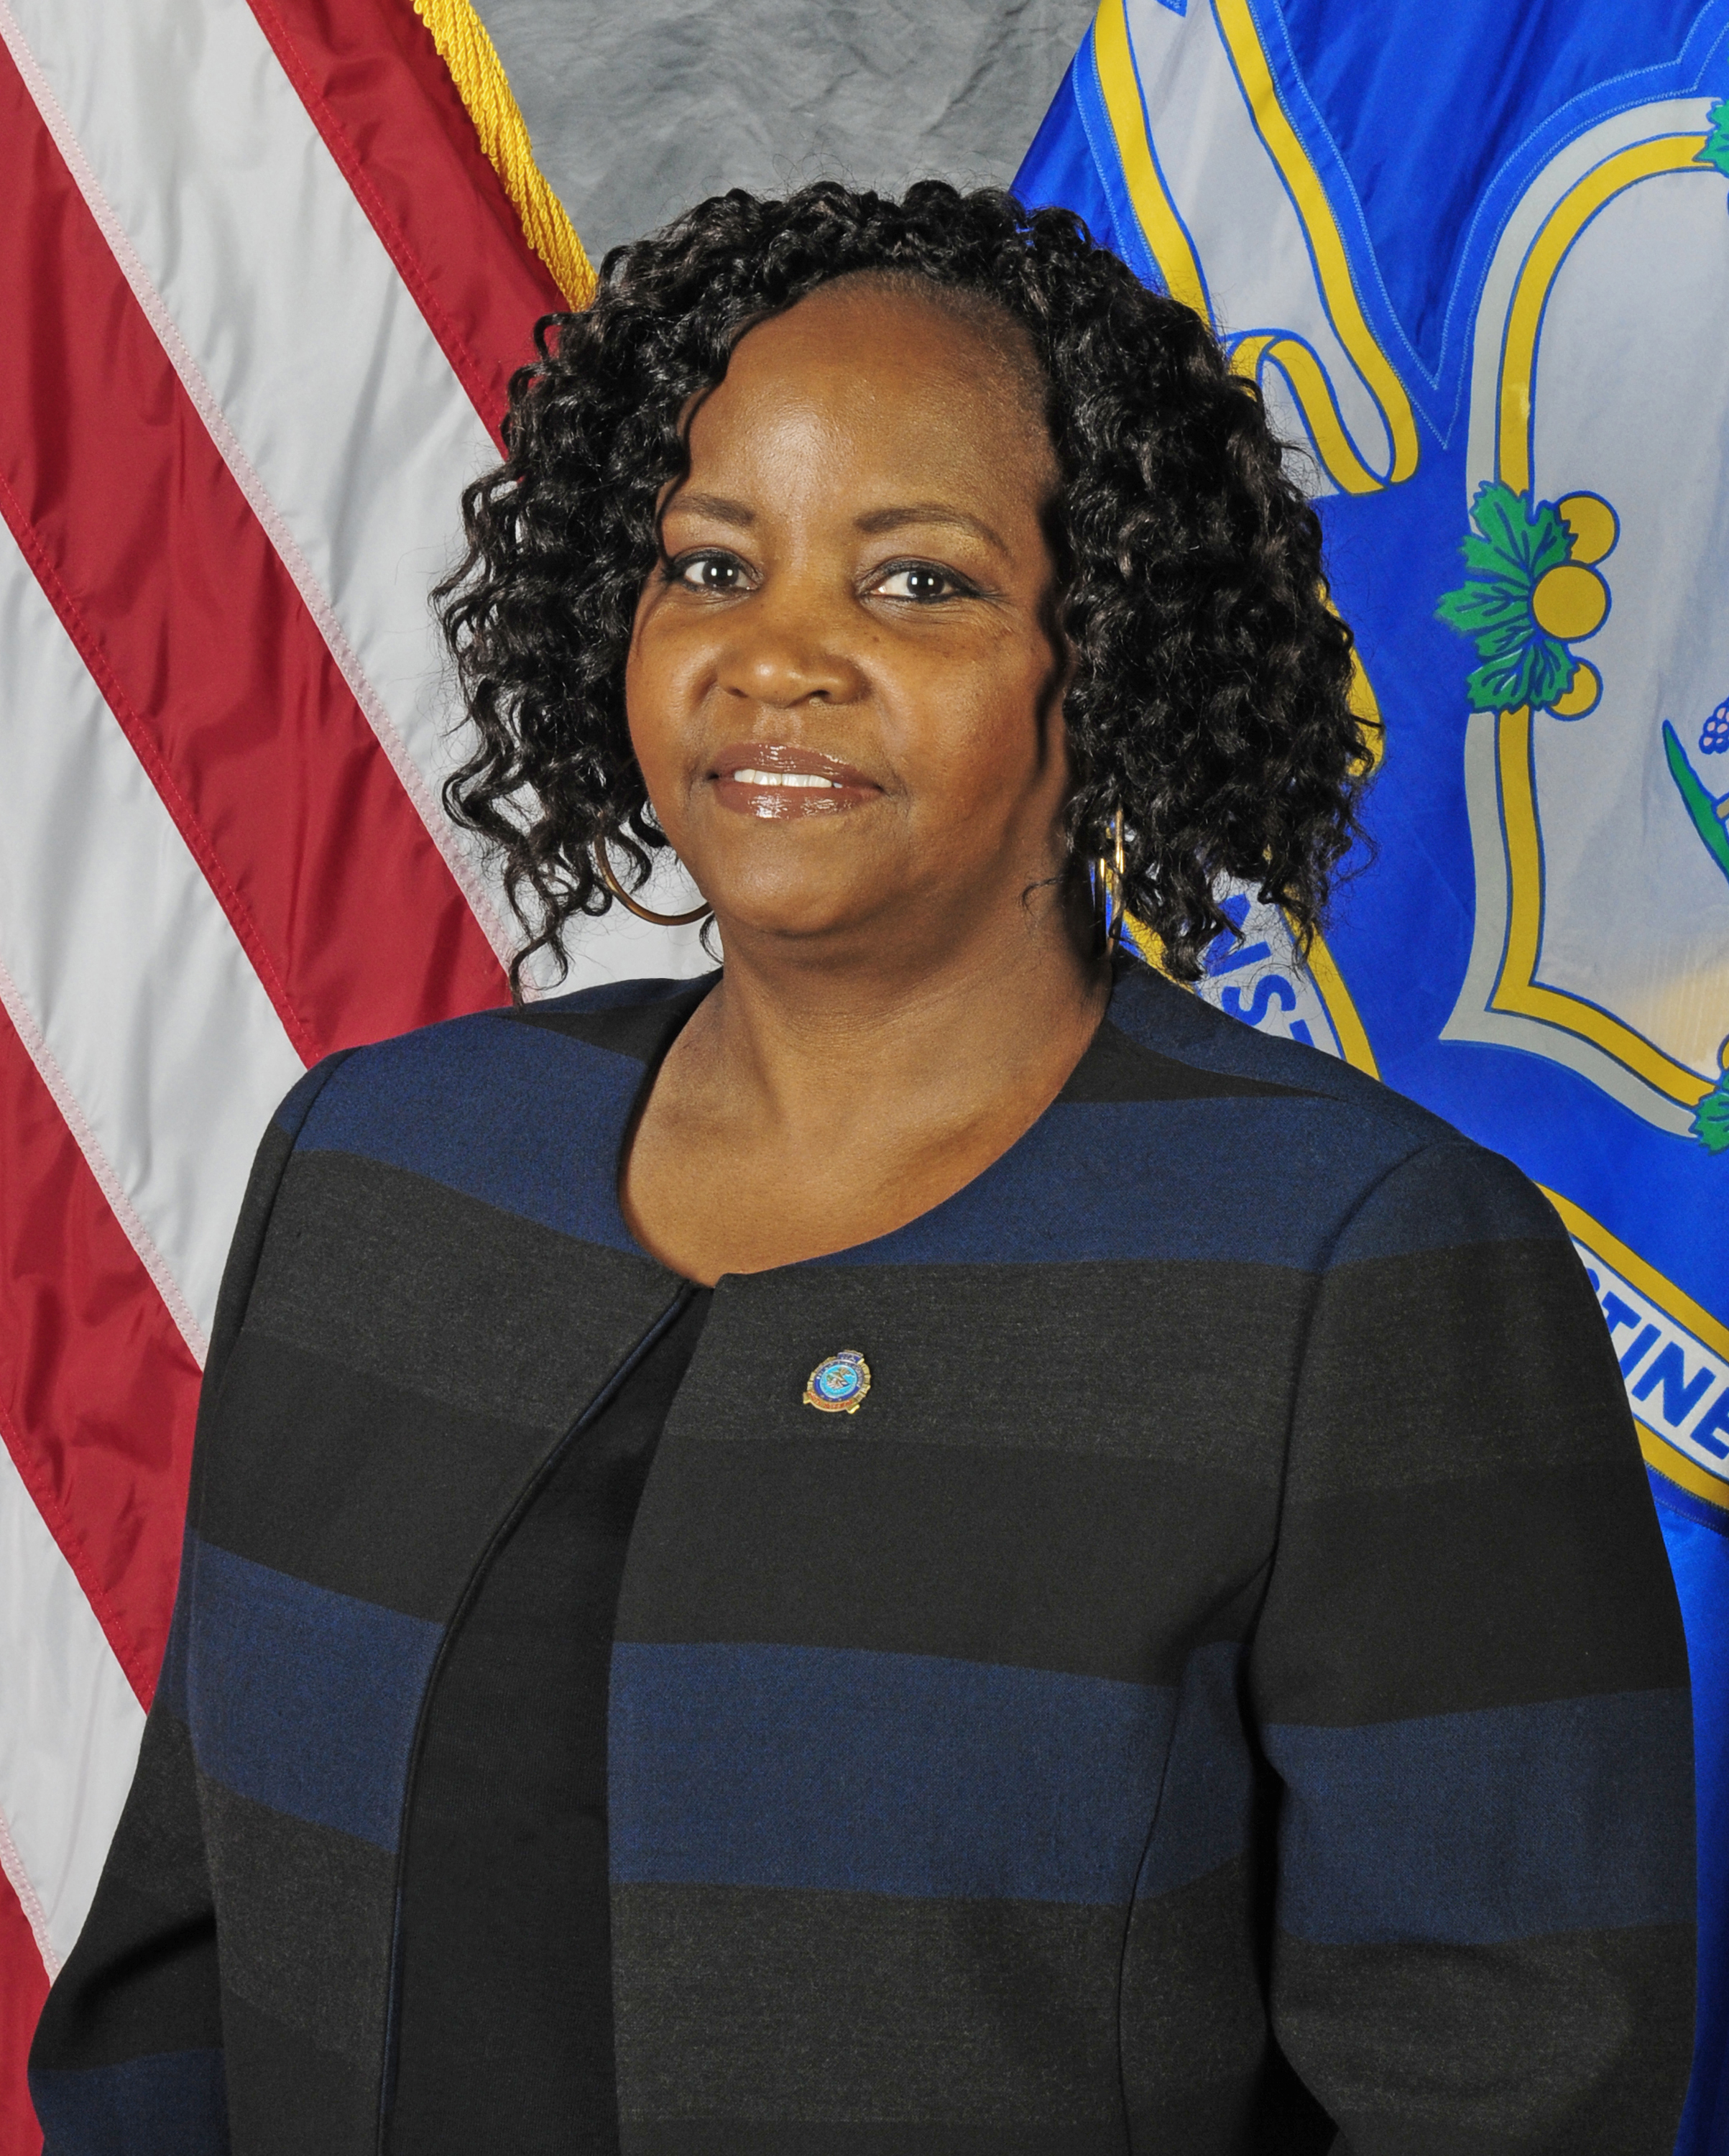 Deputy Commissioner Regina Rush Kittle